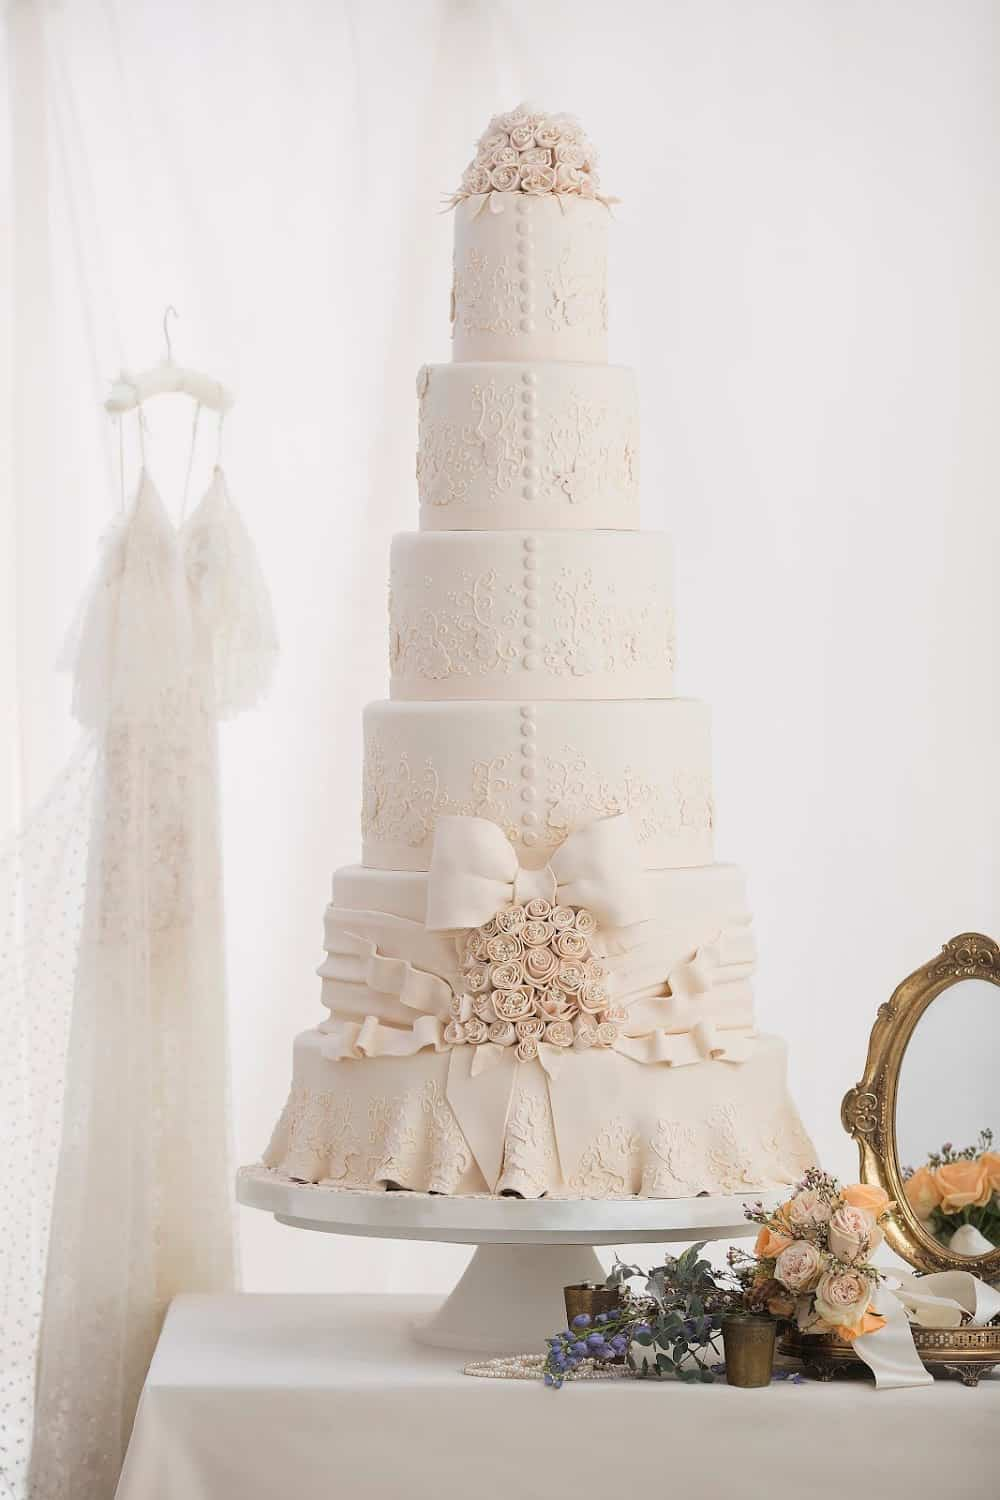 Delicious white wedding cake inspired by the bride's wedding gown.